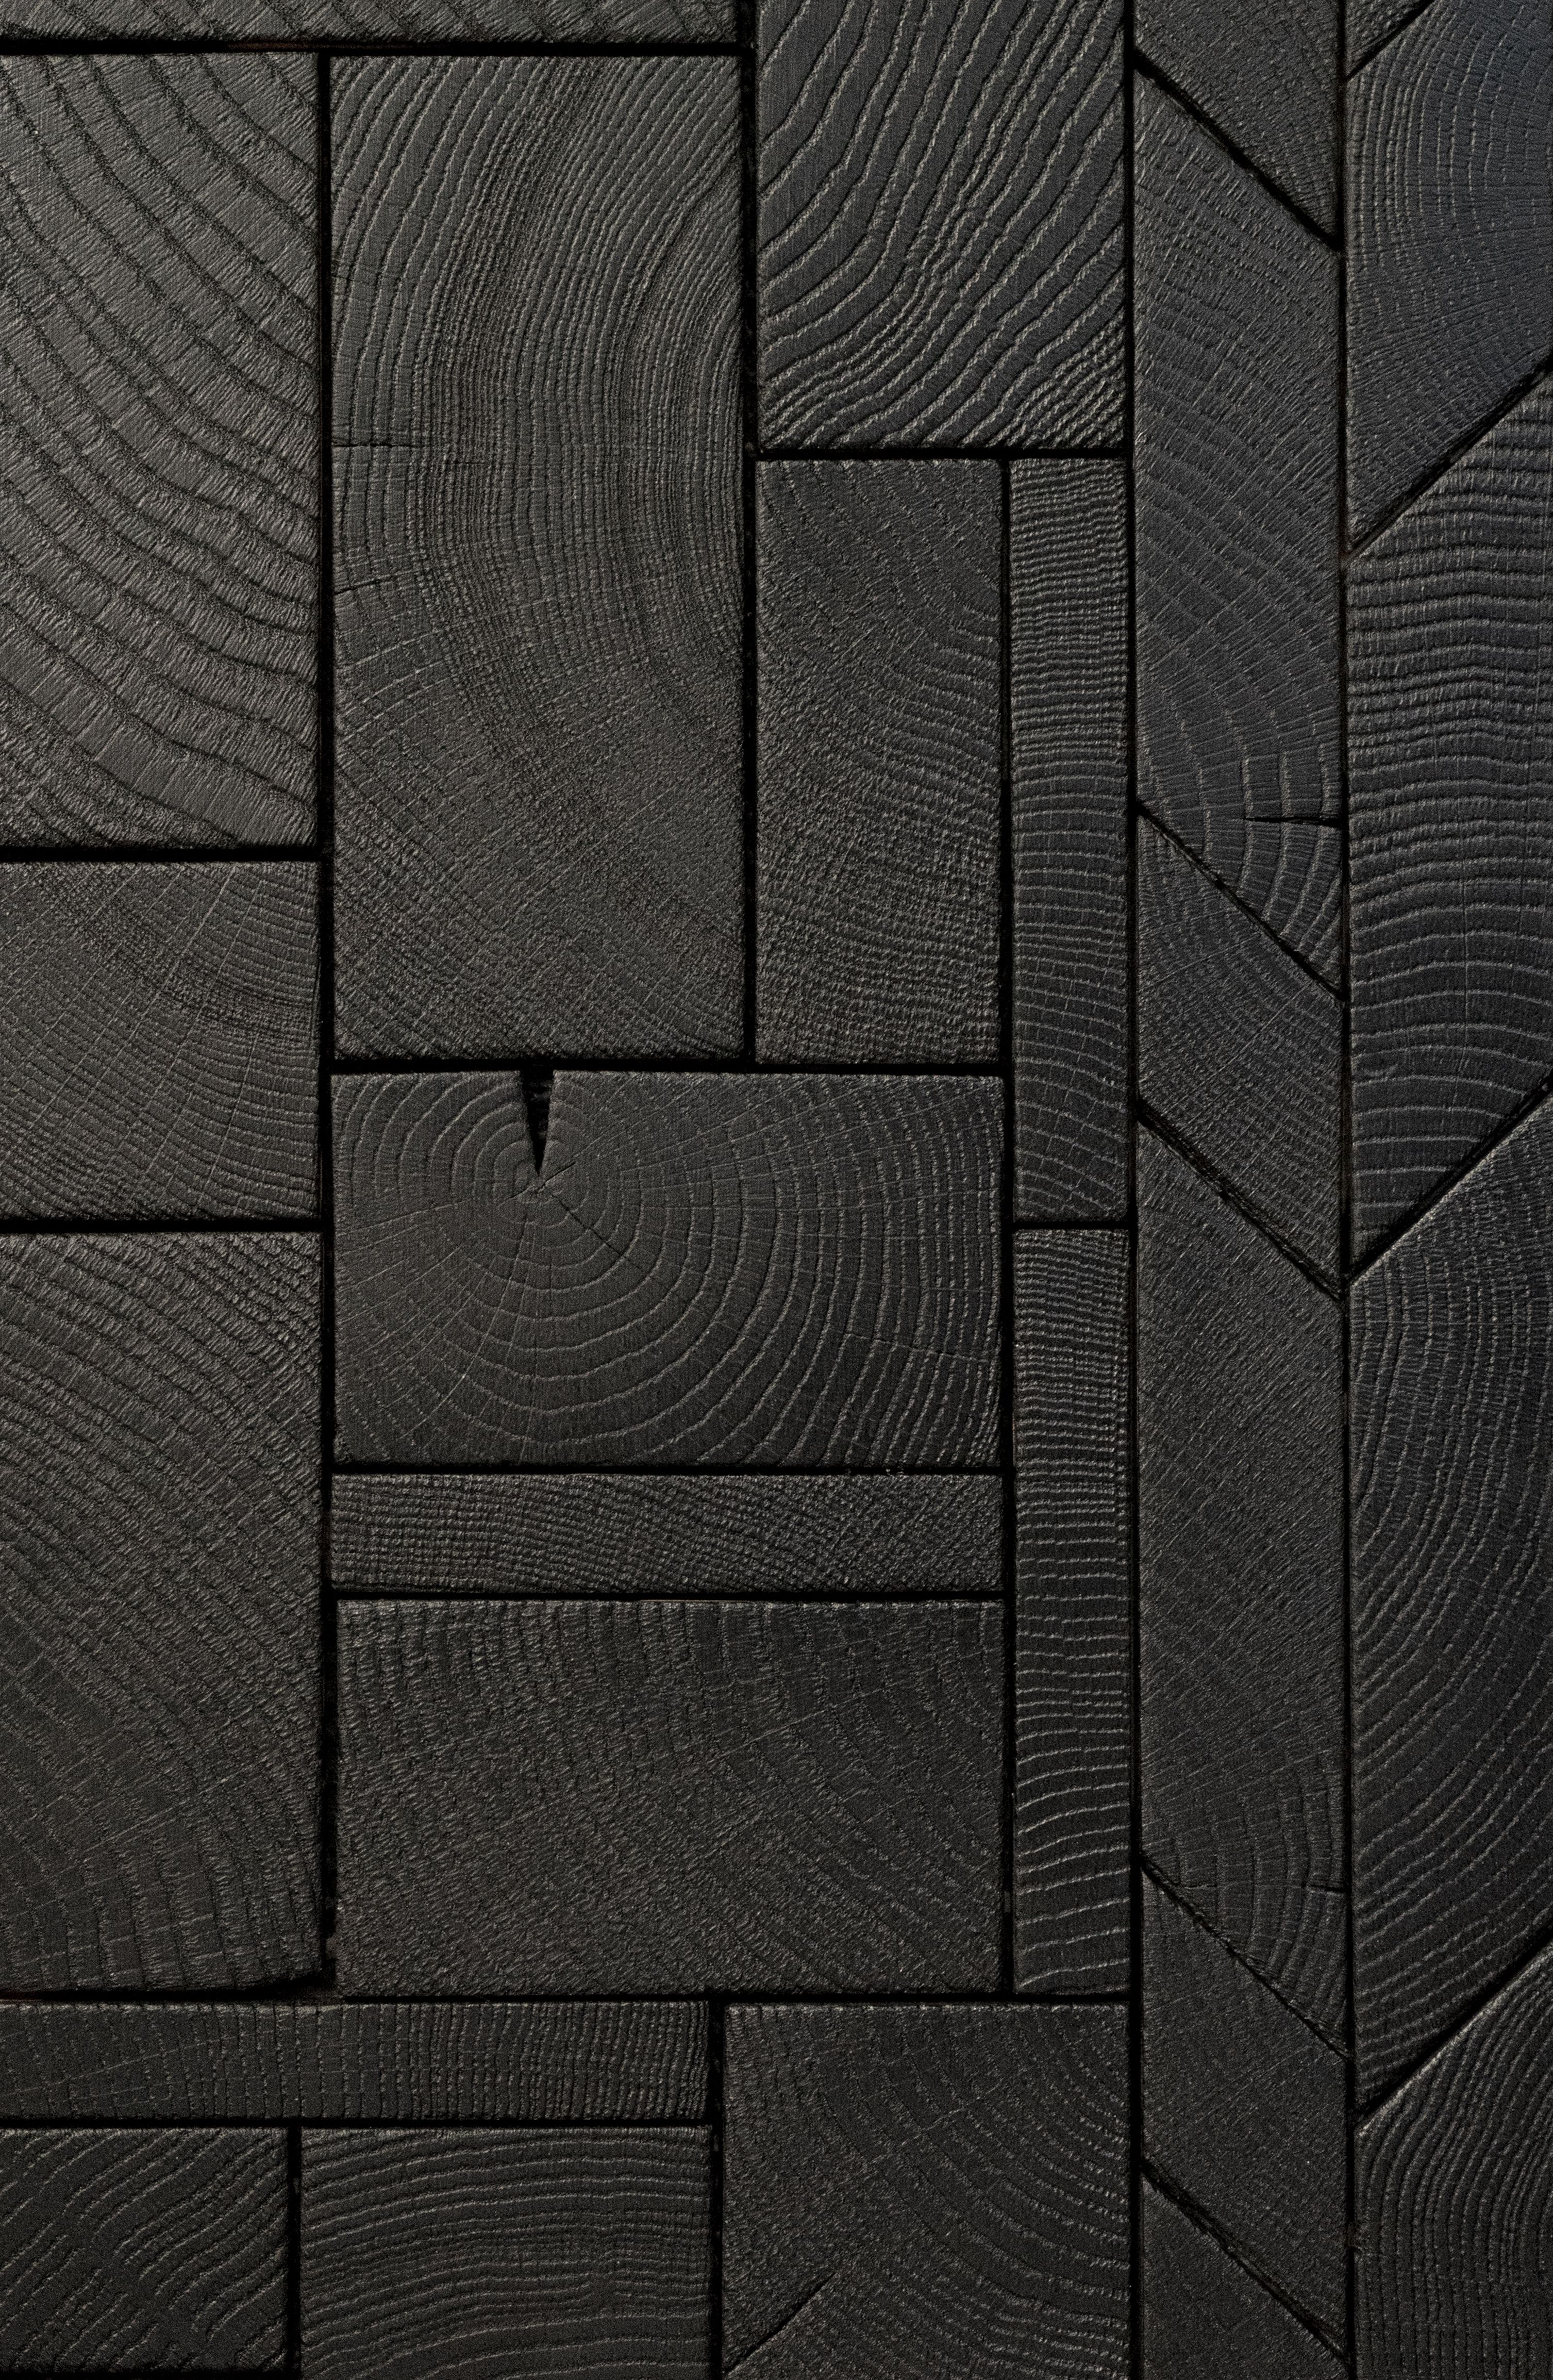 Foret Collection End Grain Flooring Burnt Wood Finish Charred Wood